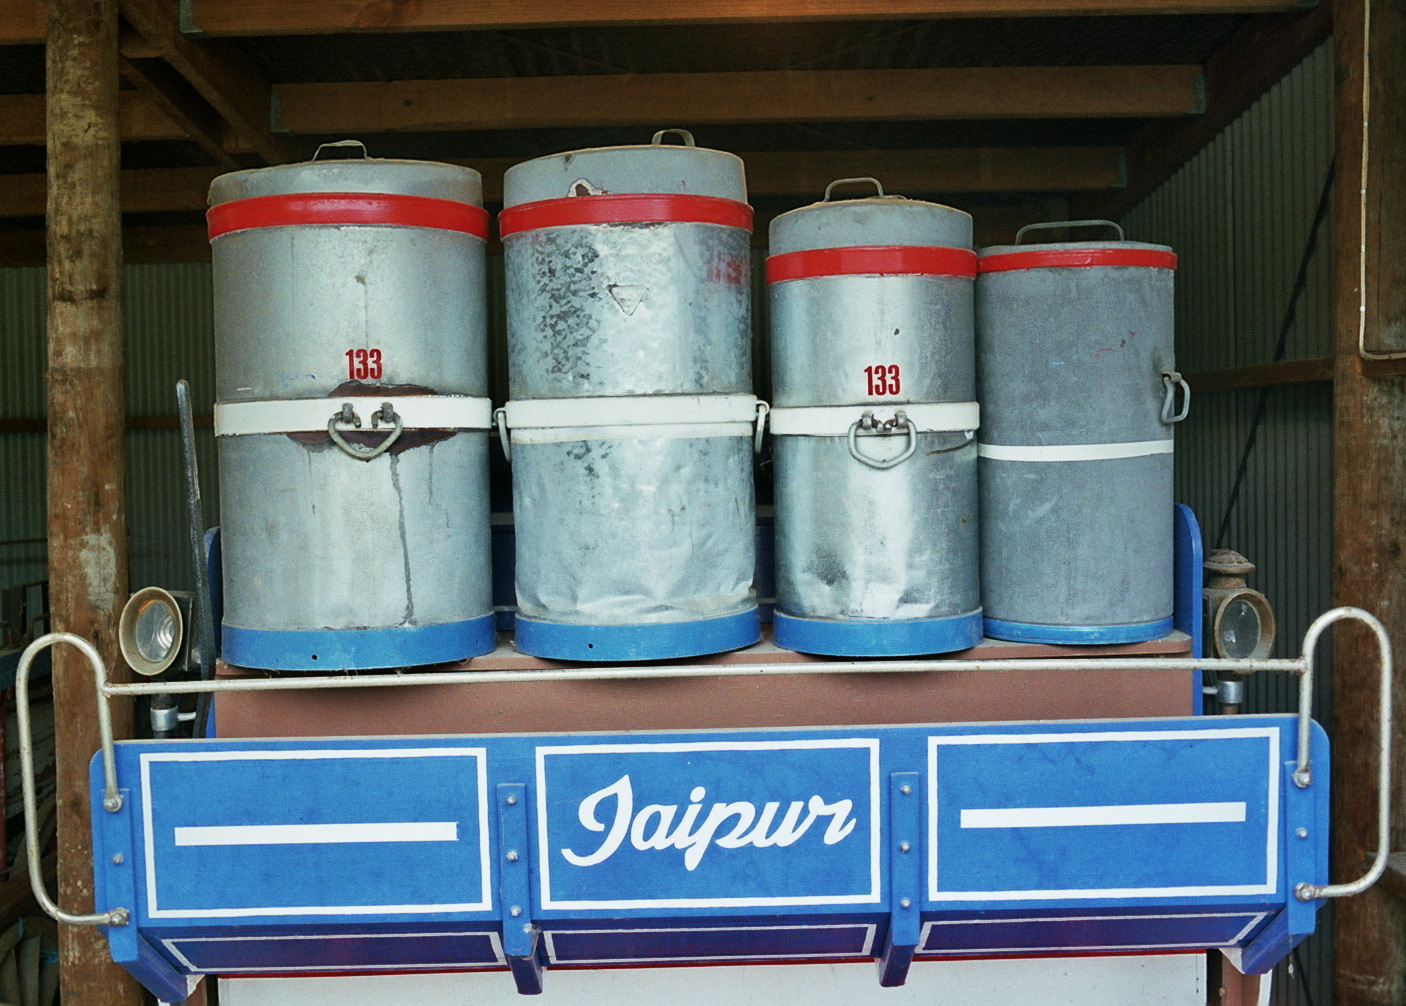 These galvanized cans are from the 1950s and were made by Hardley's of Auckland, New Zealand. Spellerberg acquired them only recently from the family of a North Island dairy farmer.